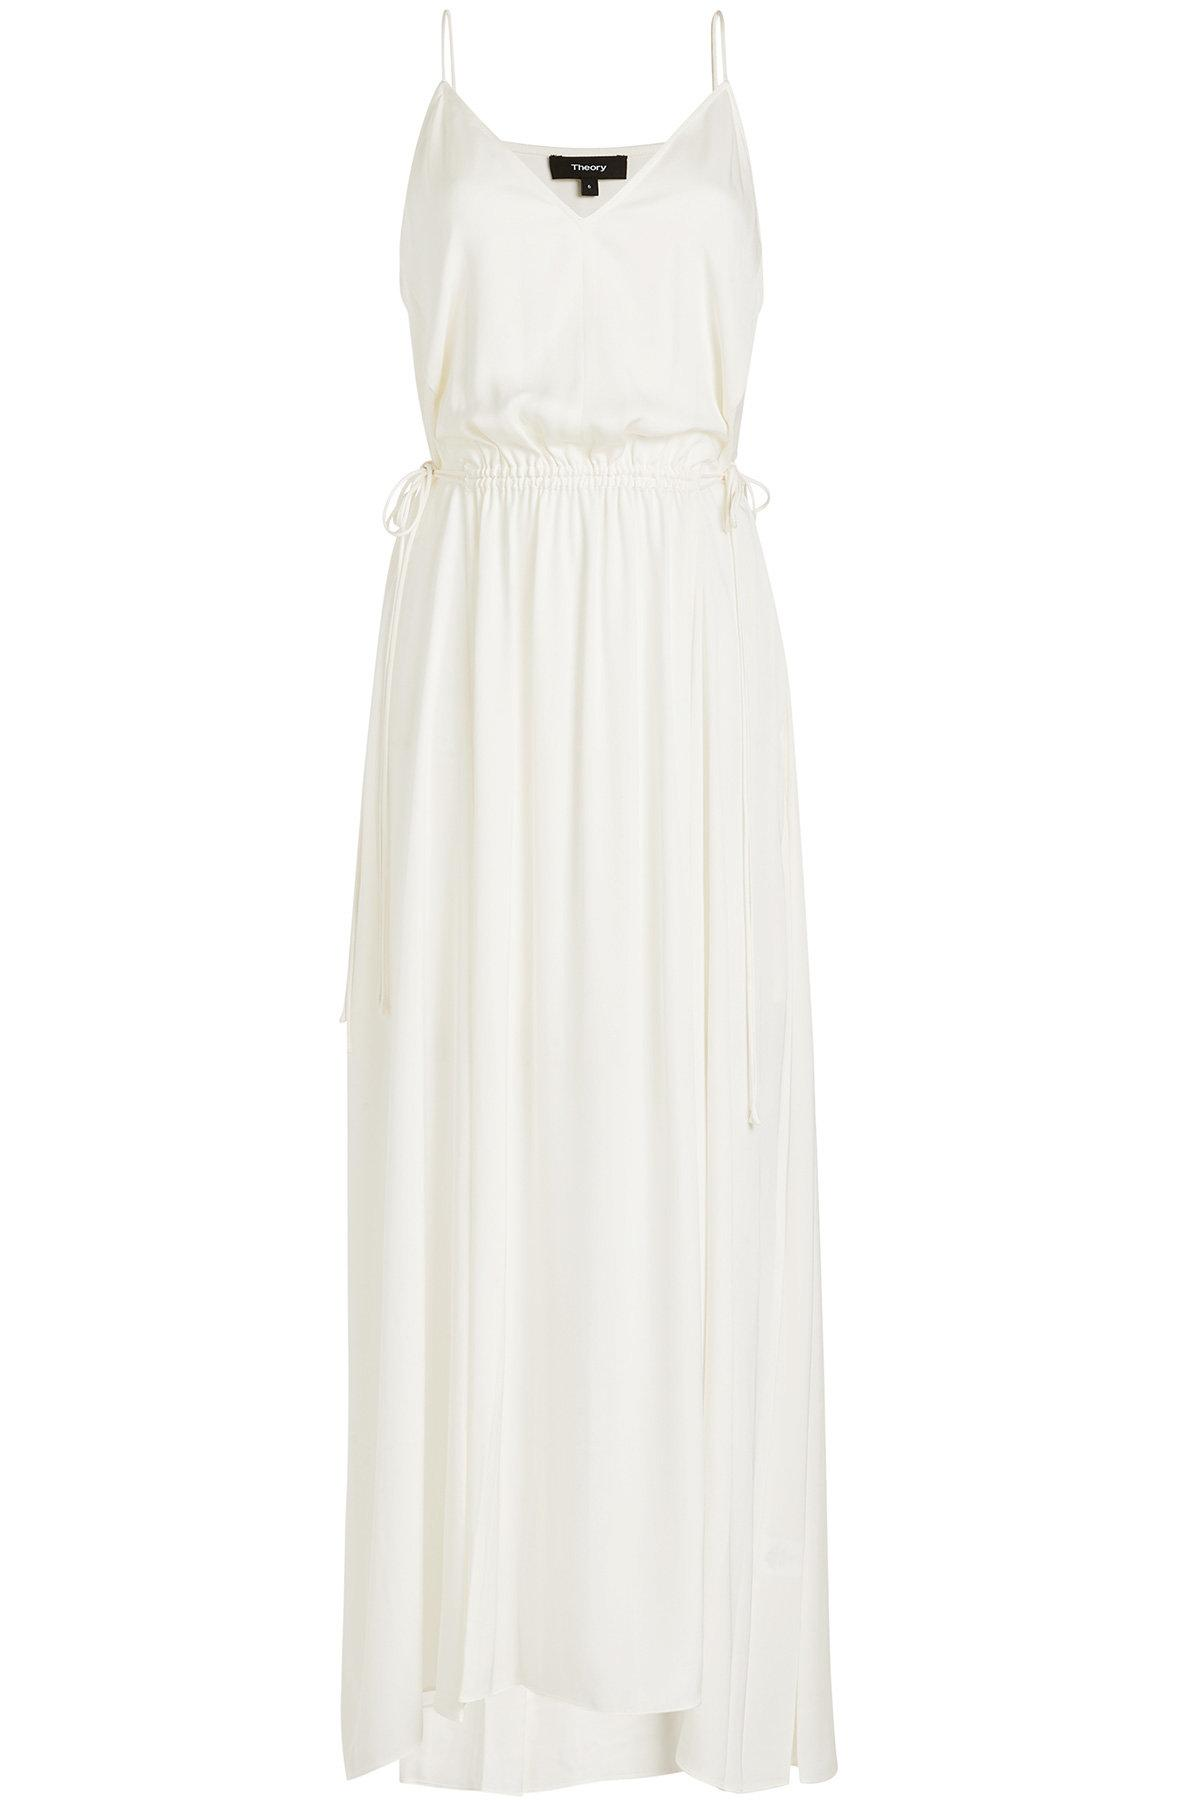 9aea32cd039 Theory - White Relaxed V-neck Maxi Dress - Lyst. View fullscreen